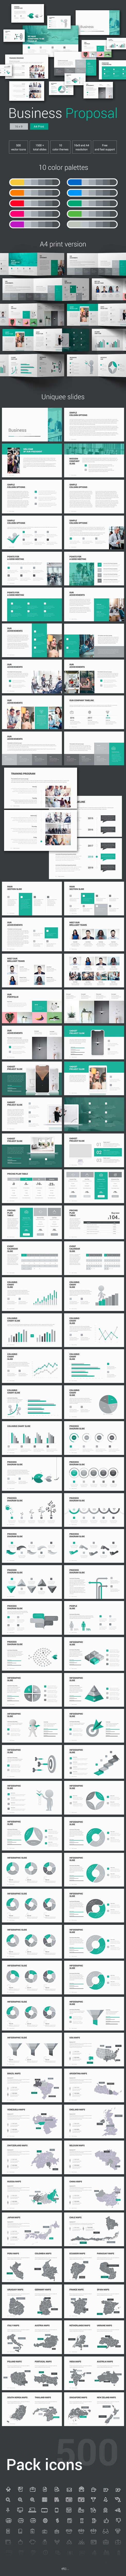 Business proposal pitch powerpoint template by malis graphicriver business proposal pitch powerpoint template business powerpoint templates toneelgroepblik Image collections